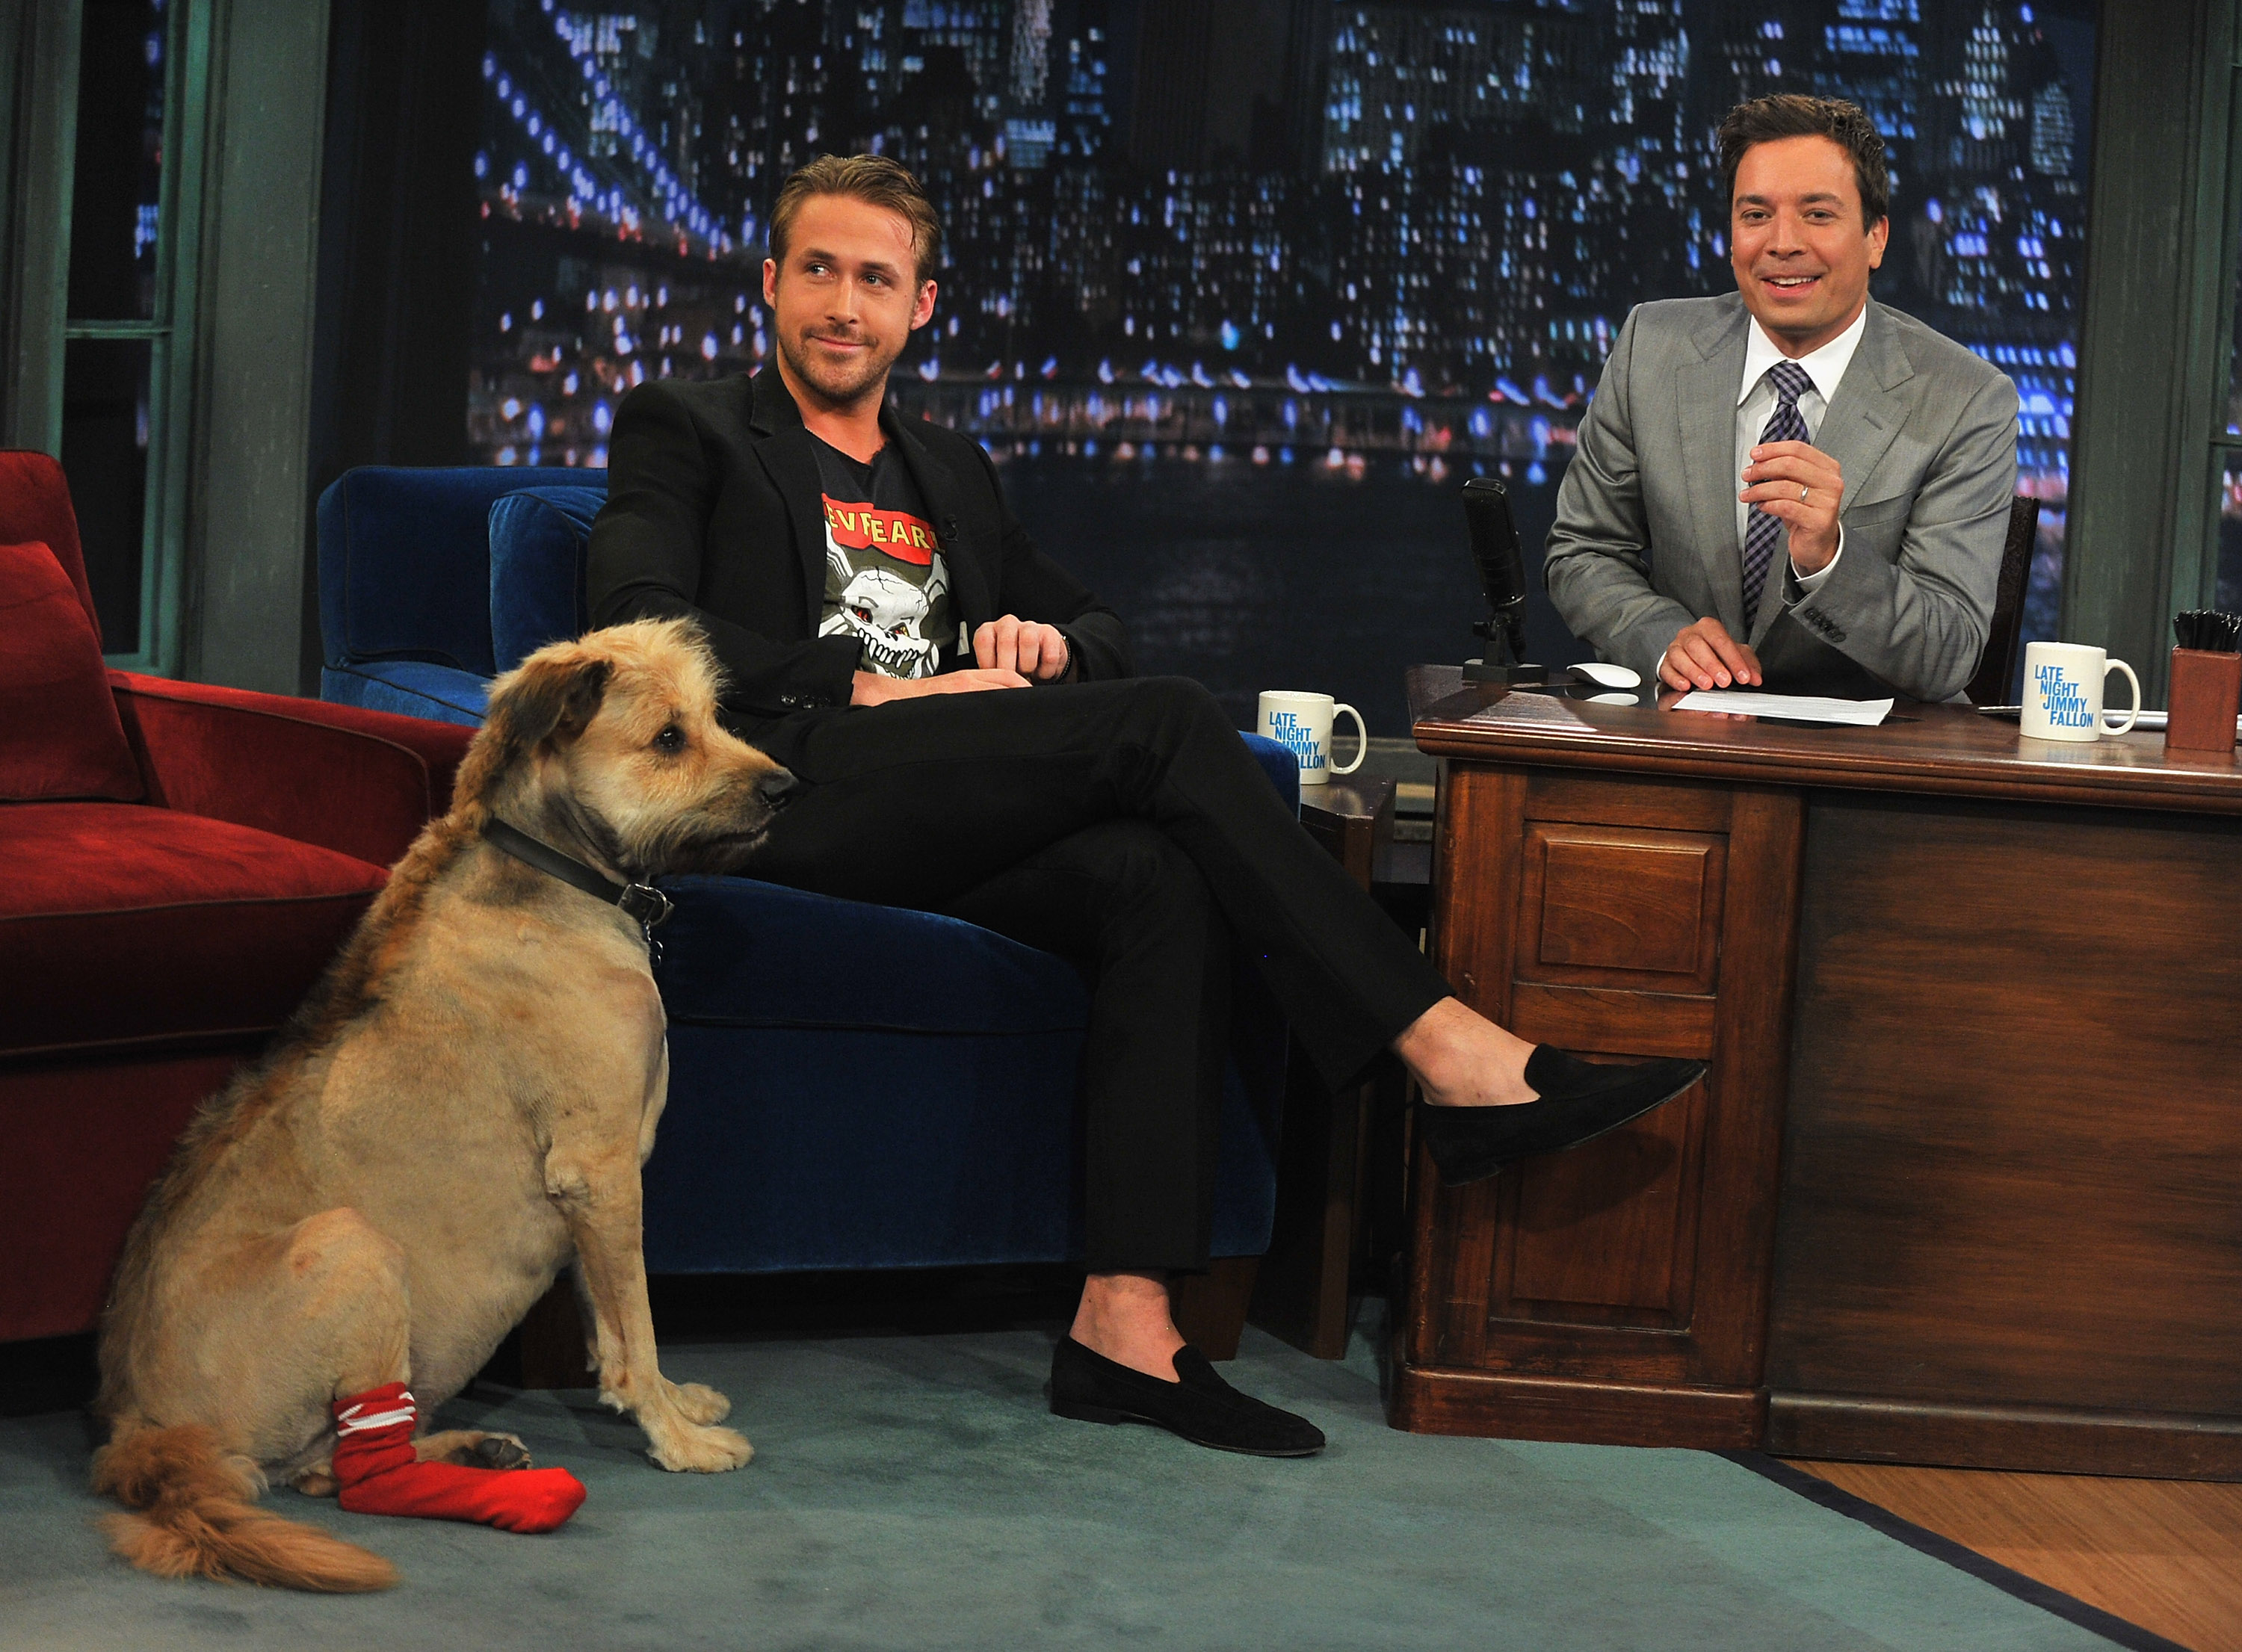 Ryan Gosling is an actual hero after rescuing a dog stranded in the middle of the road